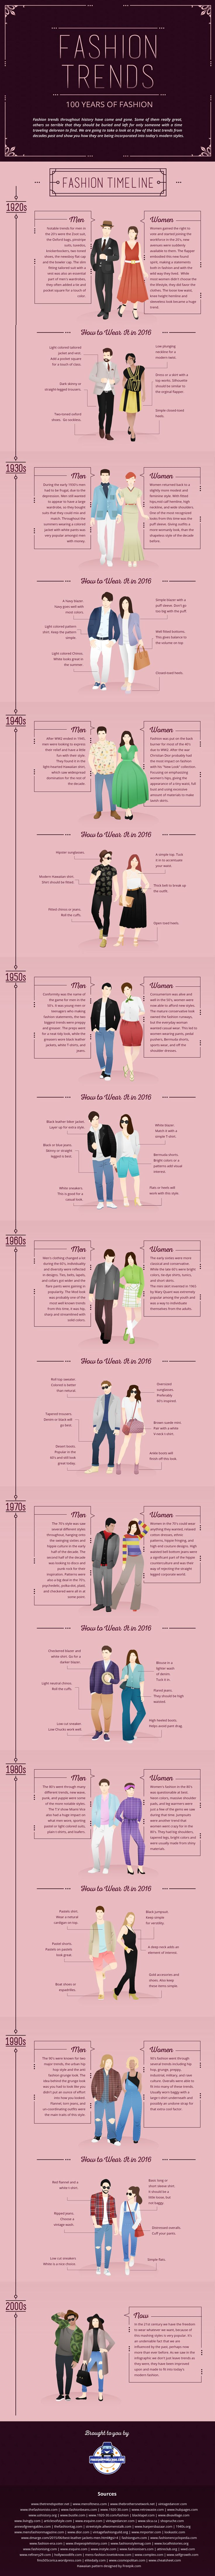 How to Wear the Fashion Trends through the Decades Infographic. Topic: vintage style, retro clothing, classic dress for women and suit for men in the 1920s, 30s, 40s, 50s, 60s, 70s, 80s, 90s.